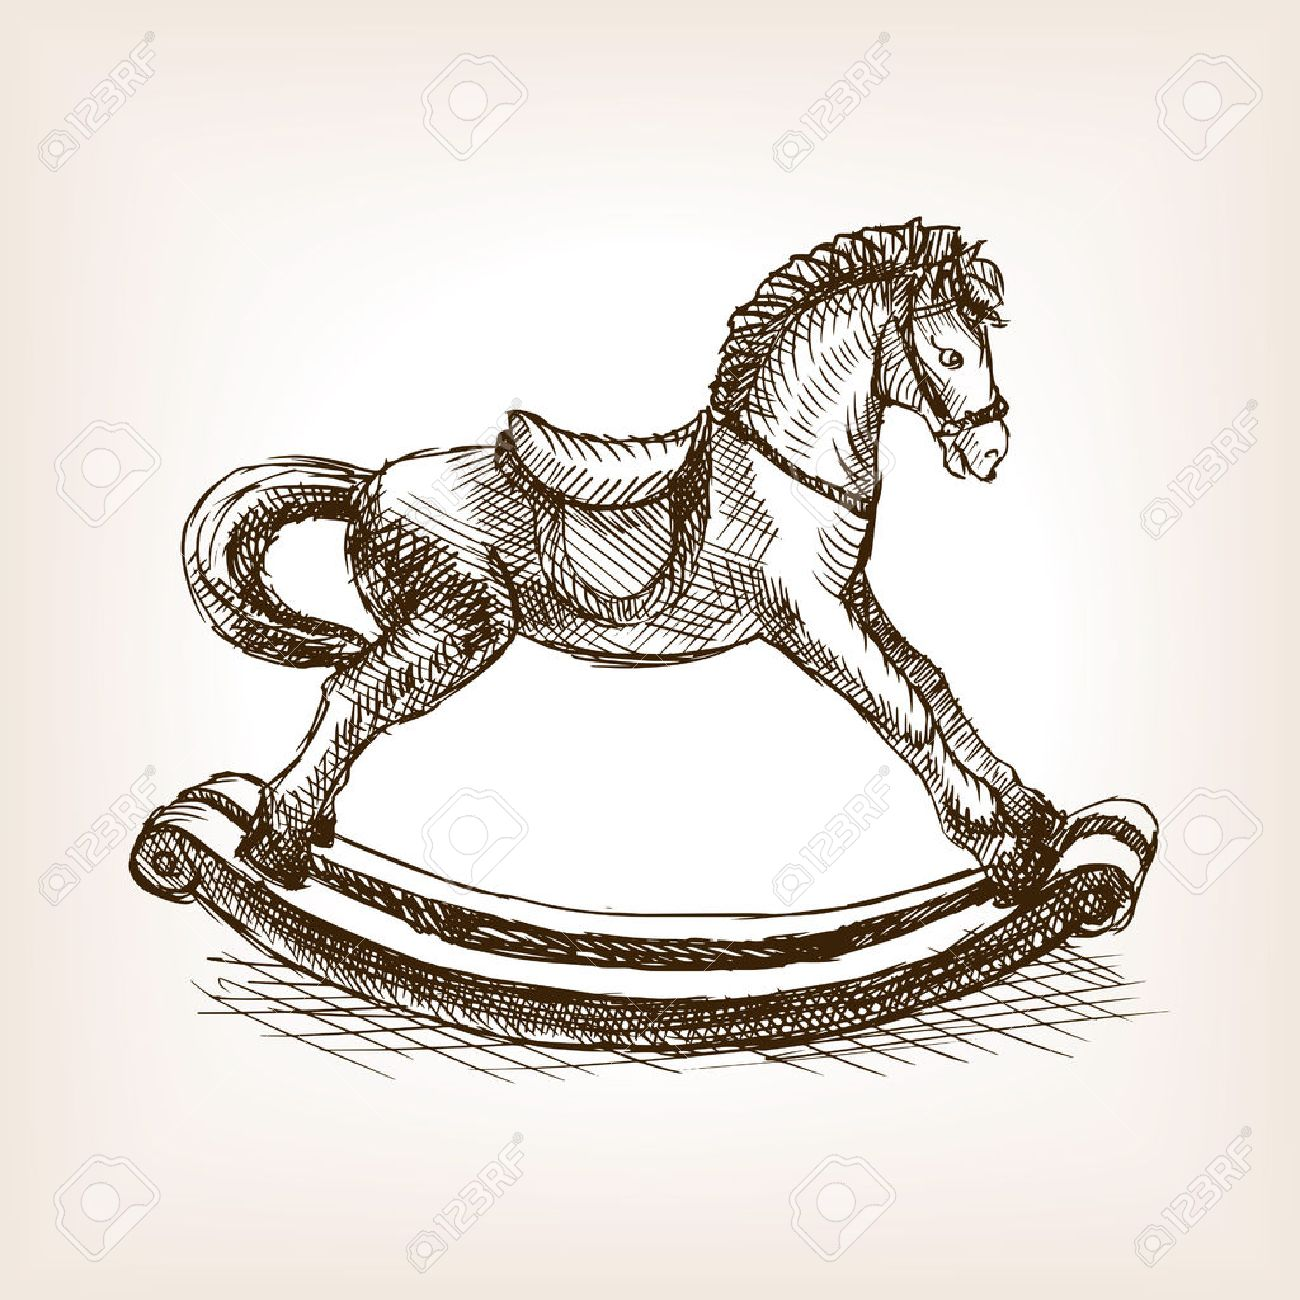 Rocking Horse Drawing at GetDrawings.com | Free for personal ...